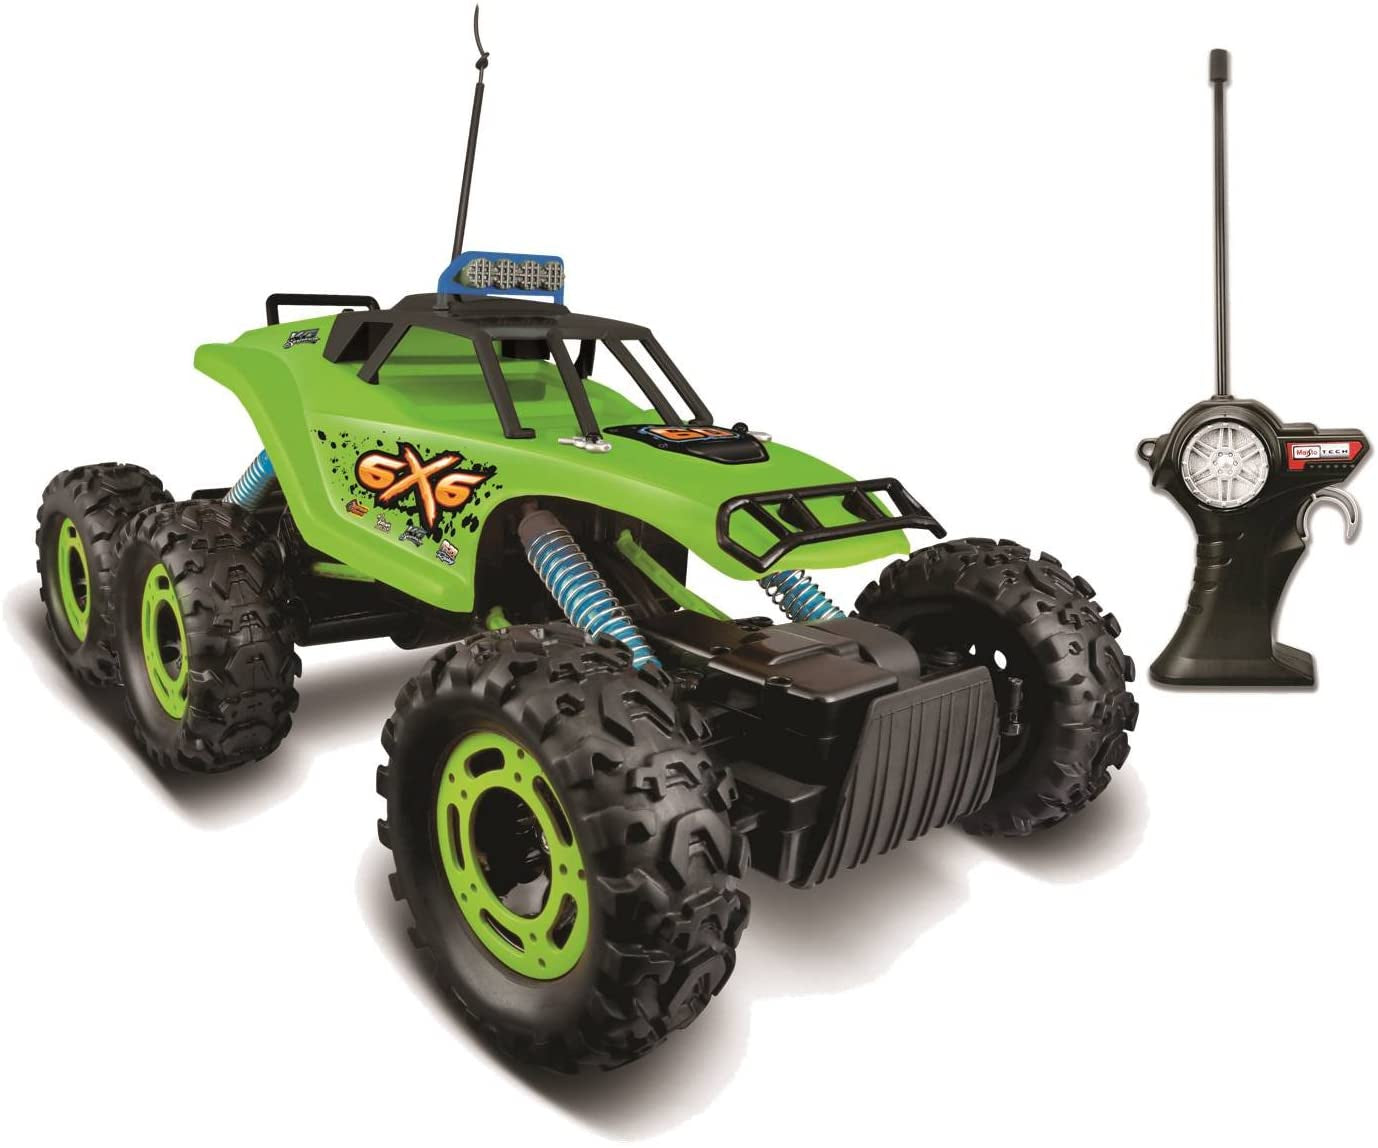 Maisto Tech Remote Control 6 x 6 Rock Crawler Vehicle